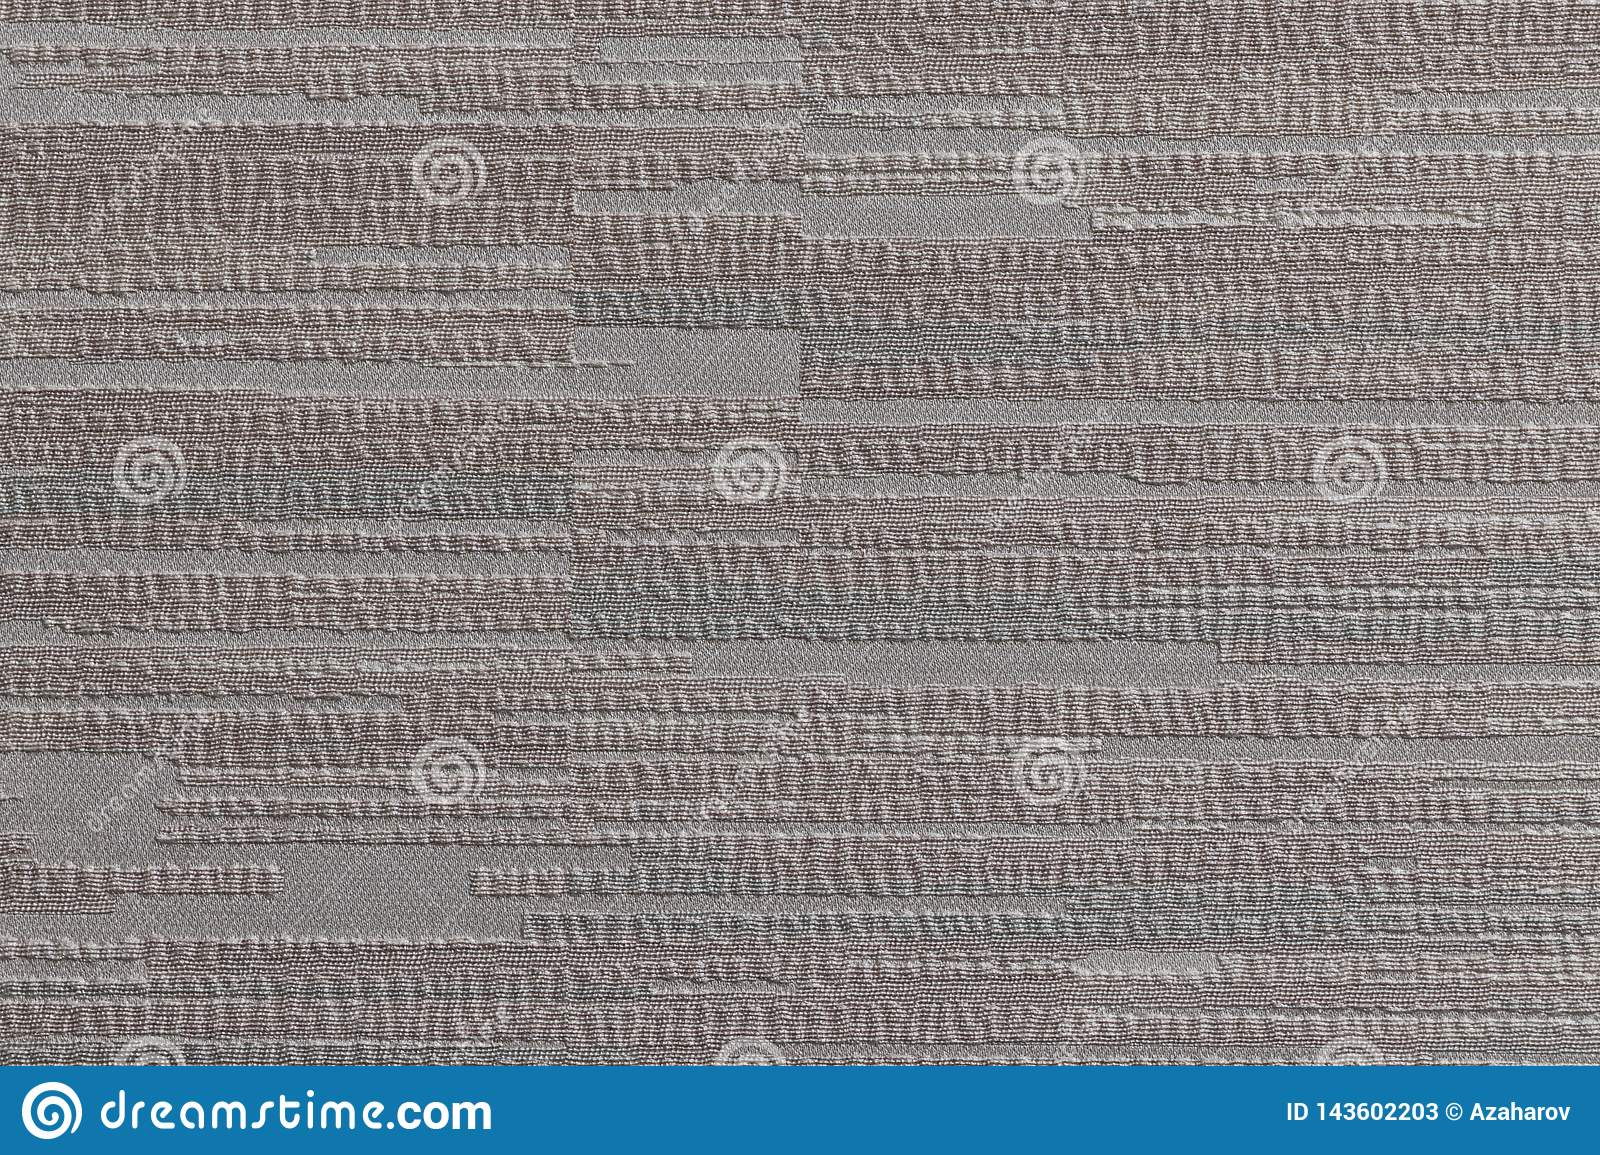 The surface of the Wallpaper with a pattern of horizontal stripes